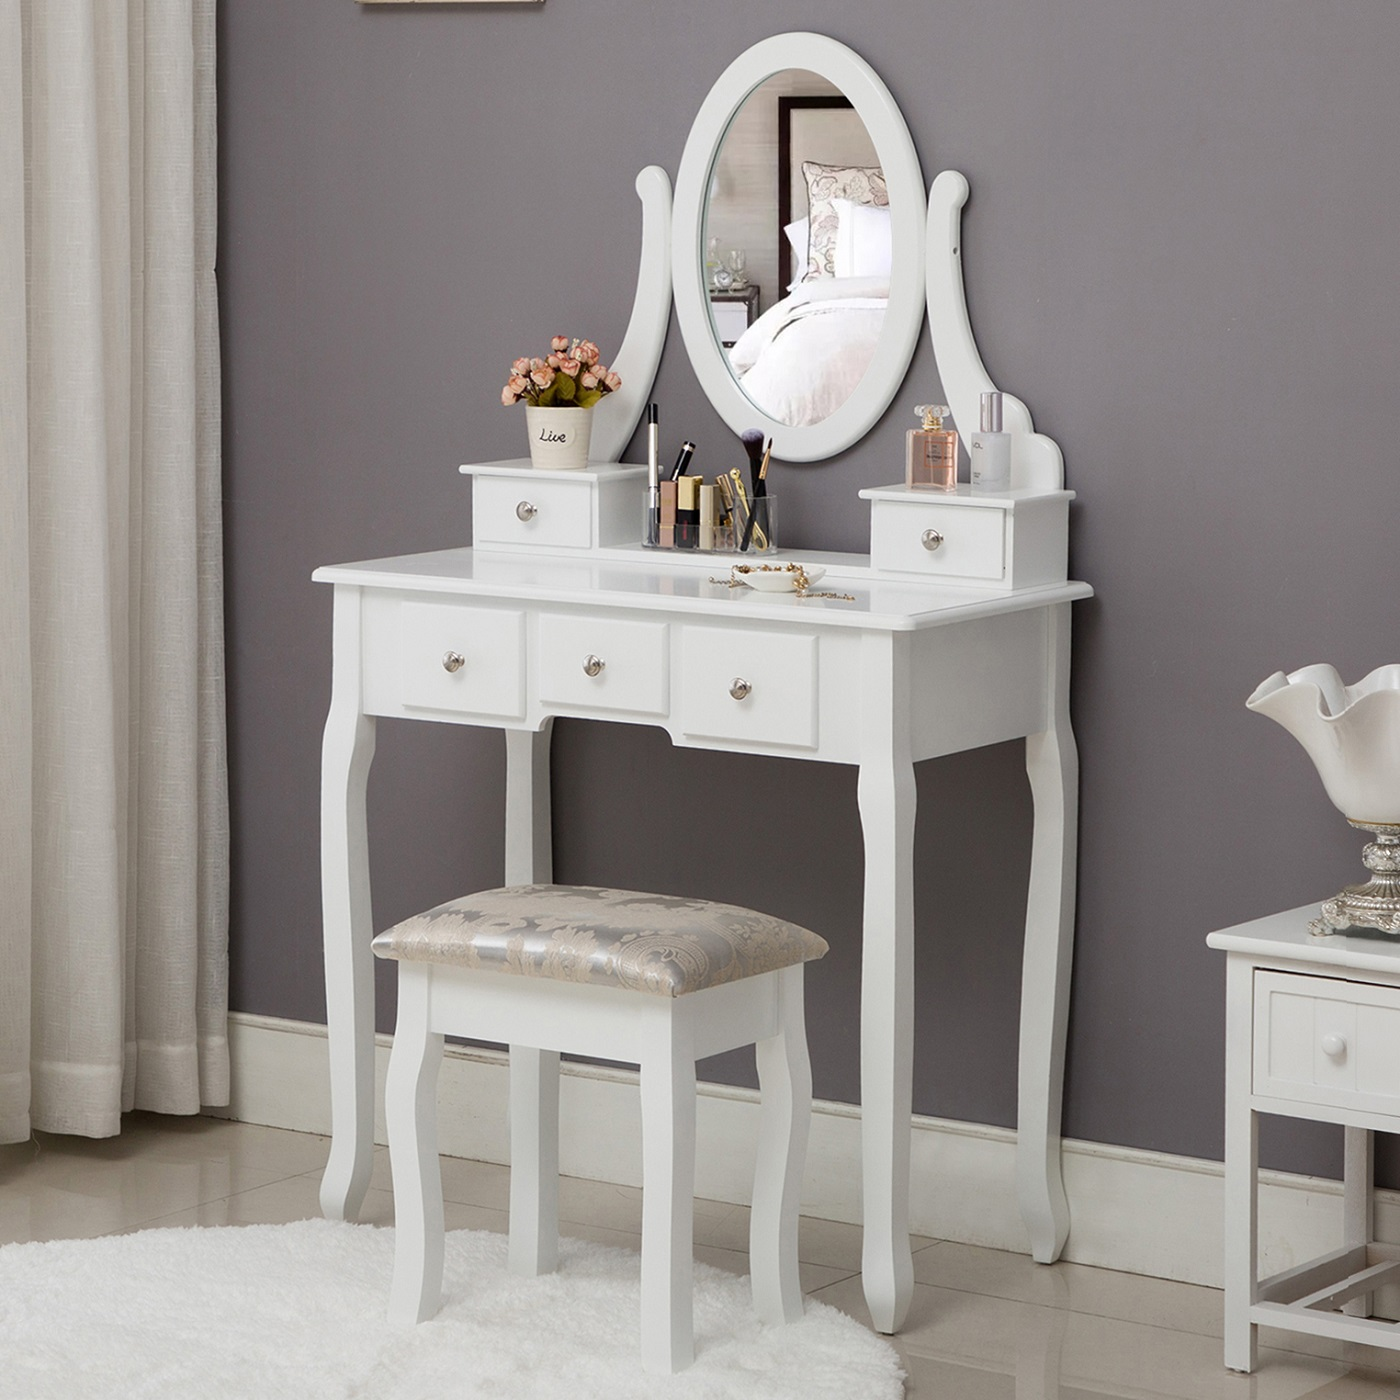 Fine Vanity Table 1 Oval Mirror Stool Set 5 Drawer Removable Gmtry Best Dining Table And Chair Ideas Images Gmtryco